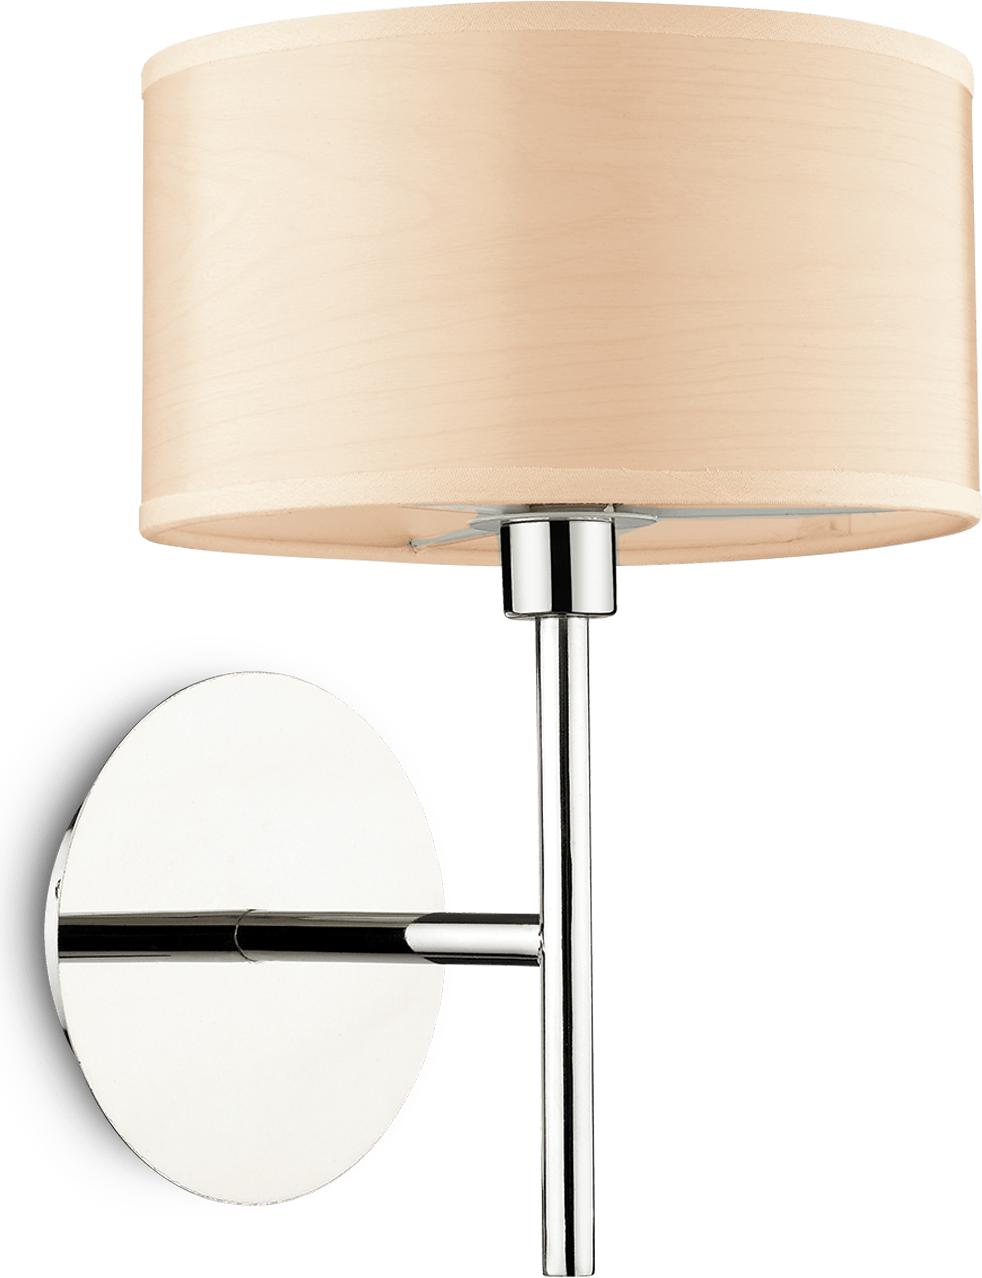 Ideal lux LED woody ap1 Wandleuchte 4,5W 87665